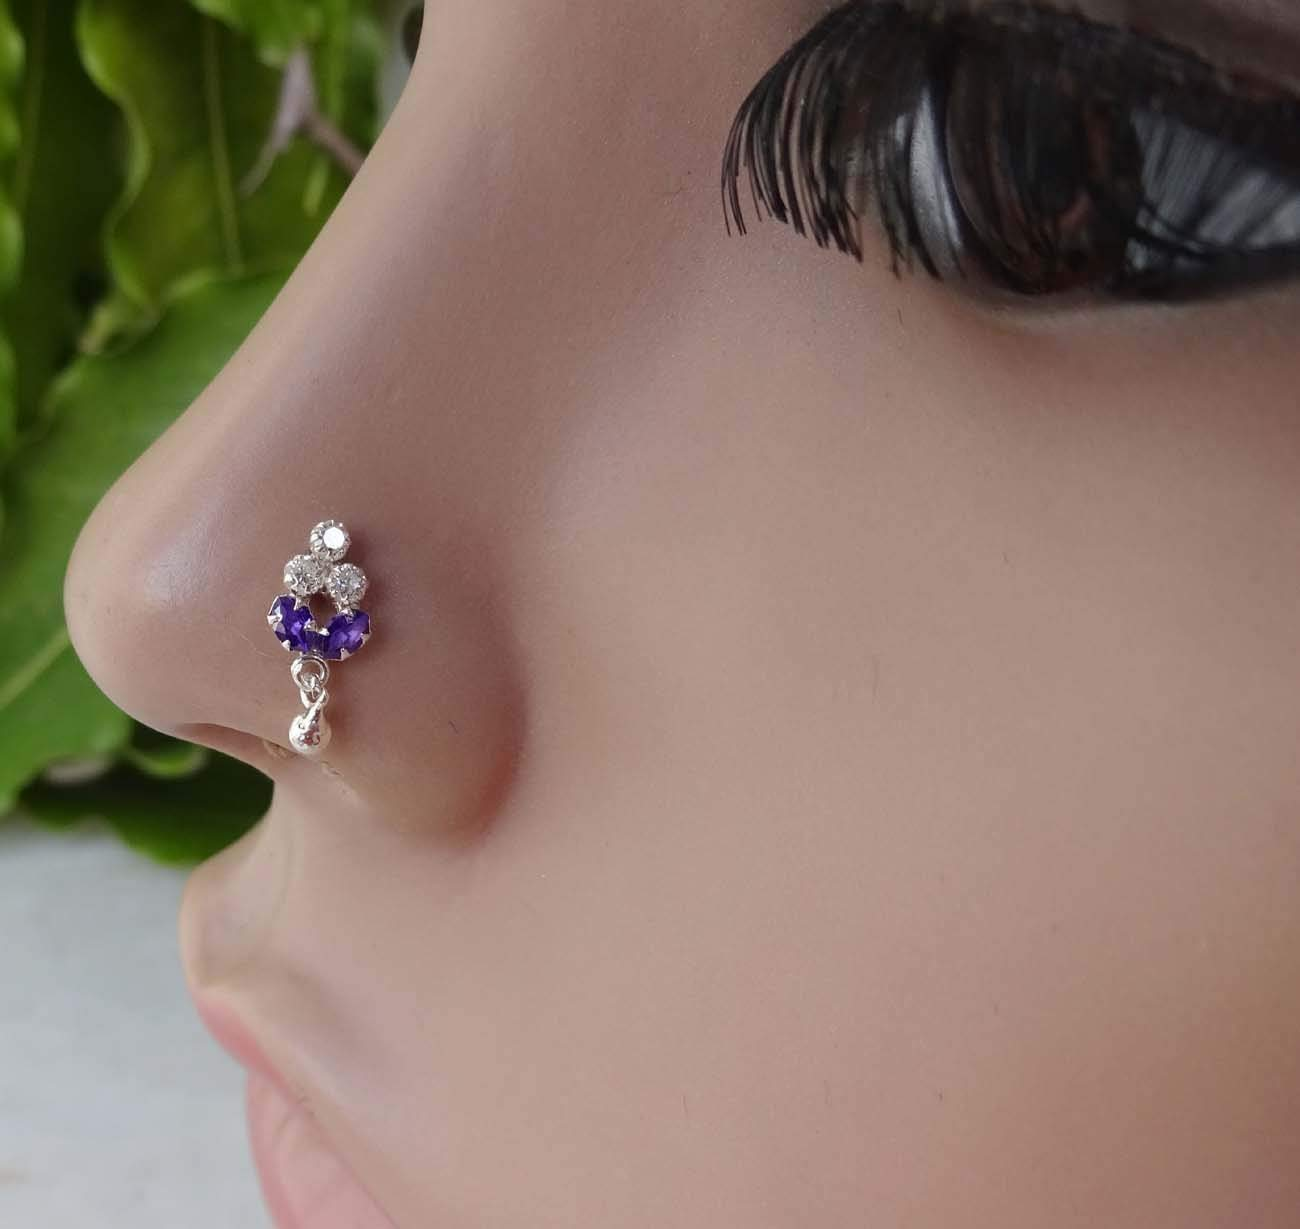 Mother Day,Sapphire Nose Stud,Sterling Silver Nose Stud,Amethyst Nose Stud,Silver Nose Piercing,Crock Screw Nose Stud,Wedding Nose Jewelry,Fresh Trends Silver Nose Stud,Nose Hoop,Nose Ring TEJ172